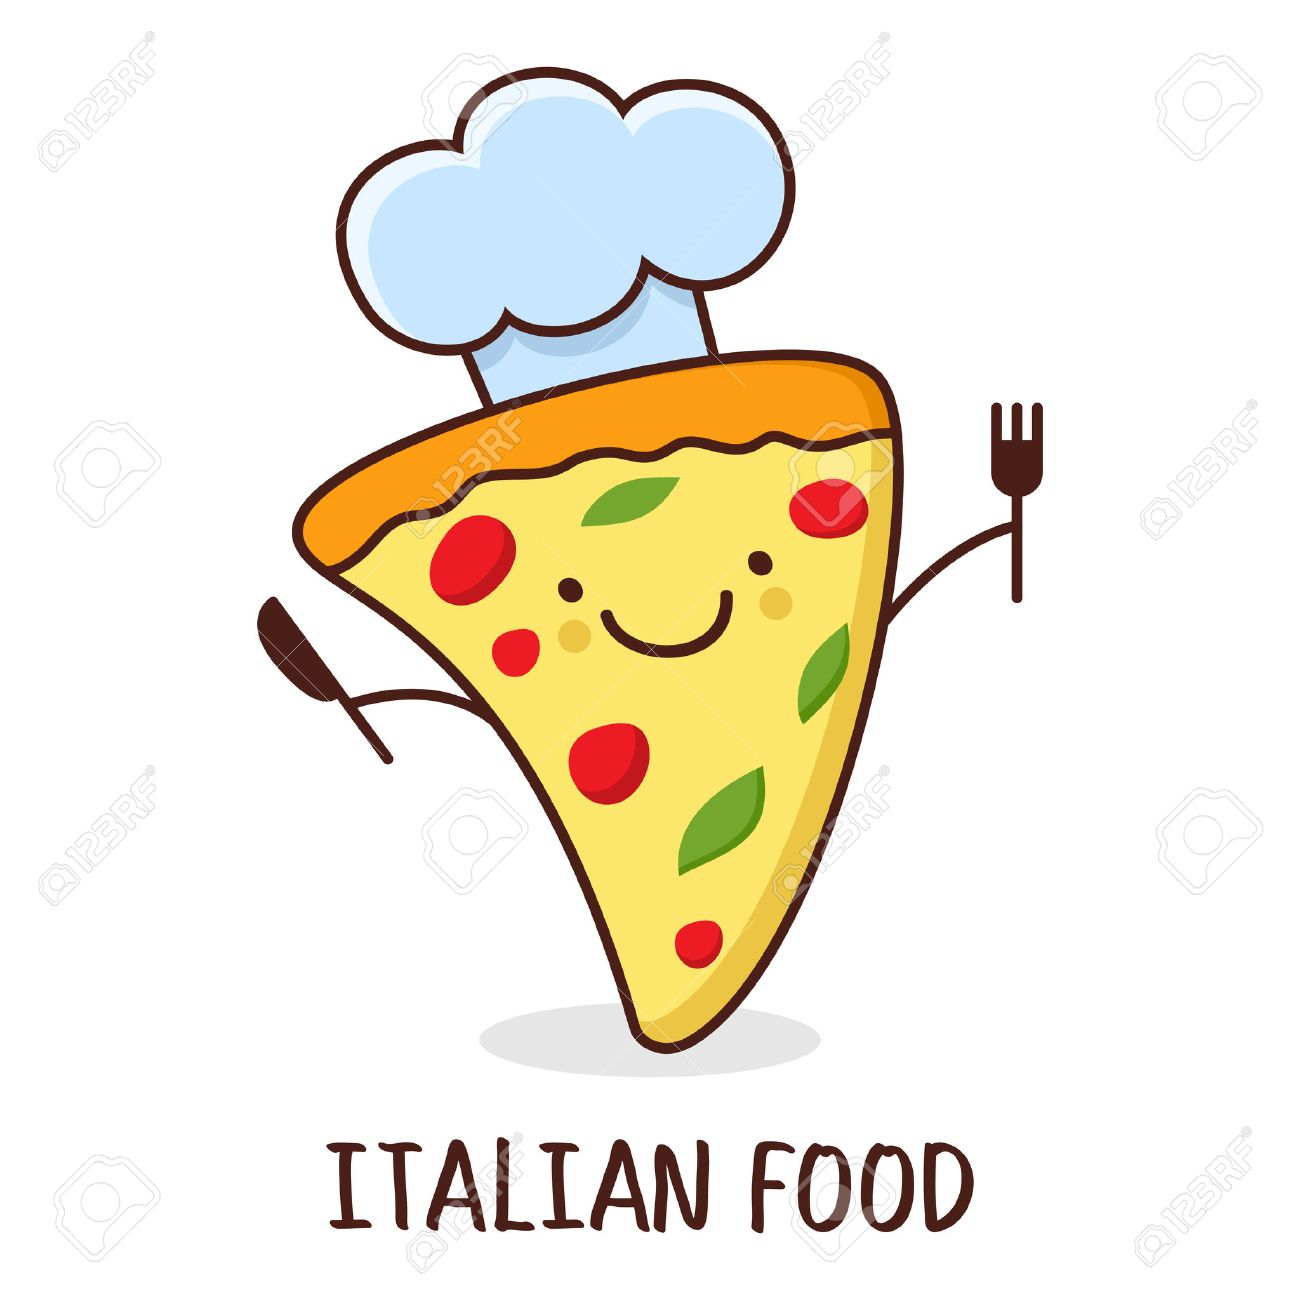 Pizza With Smiling Face - Vector Illustration. Royalty Free ...